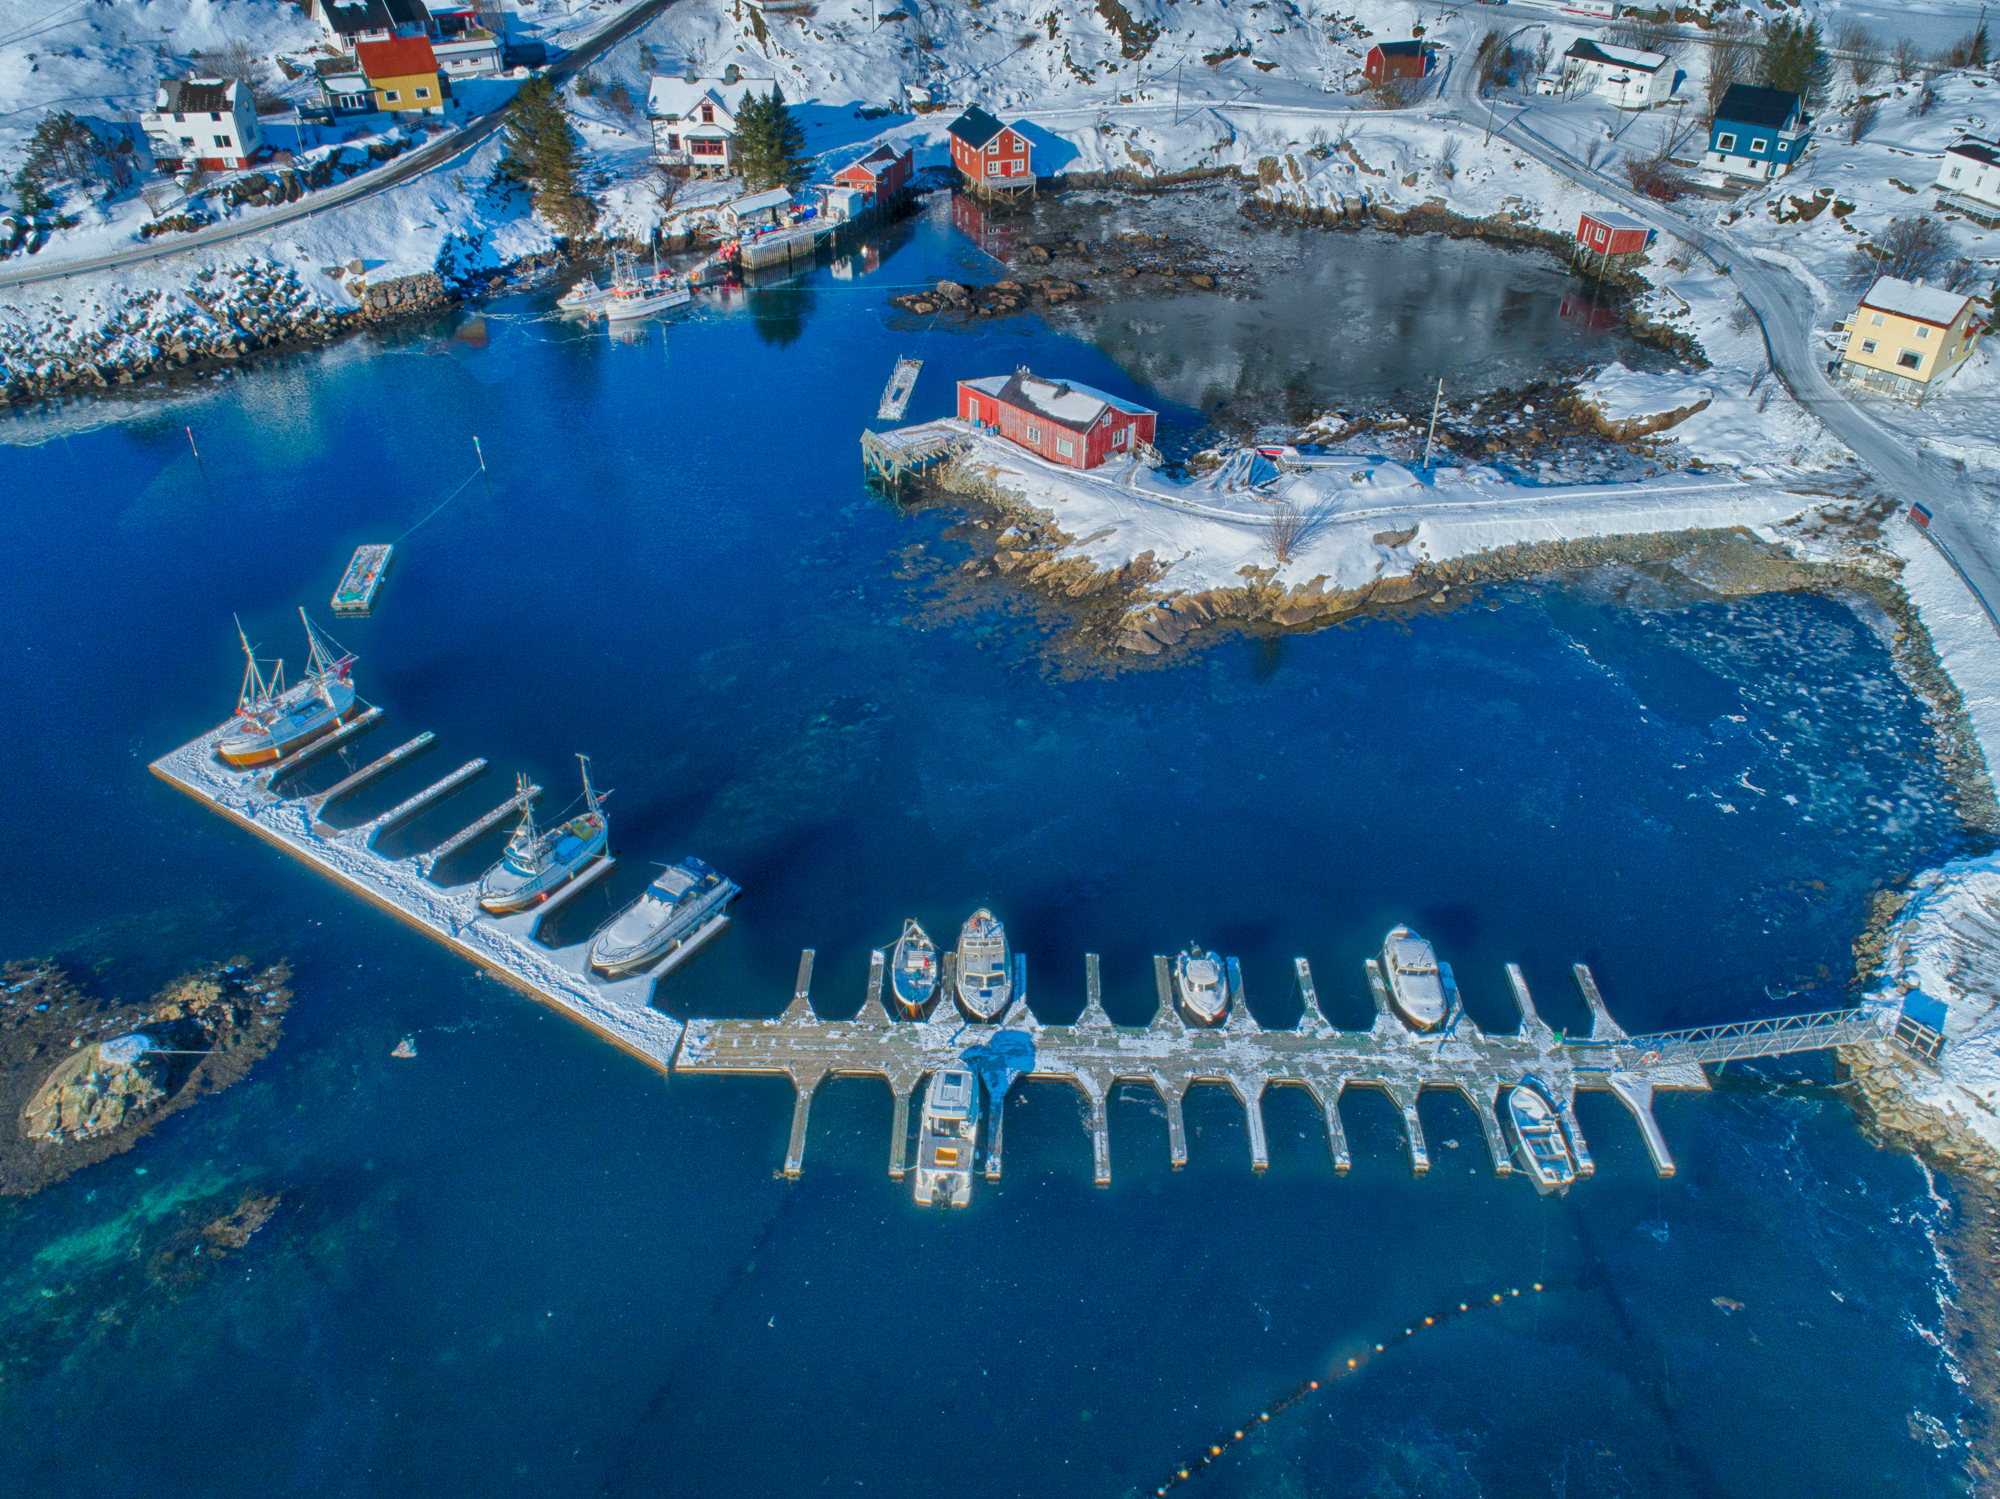 Boat Dock from the Sky - Norway